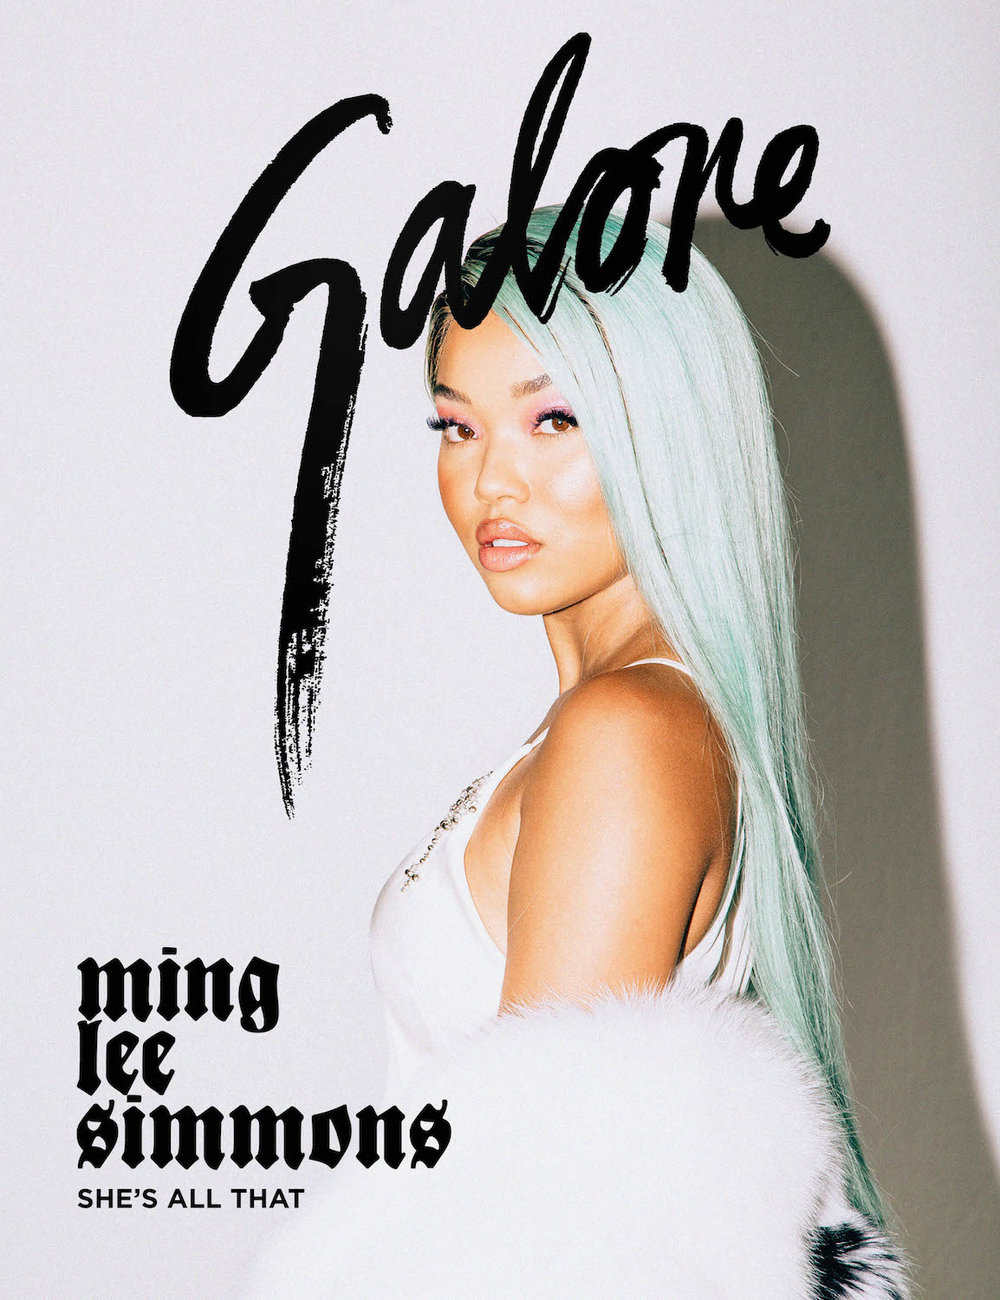 mingleesimmons_cover.jpg